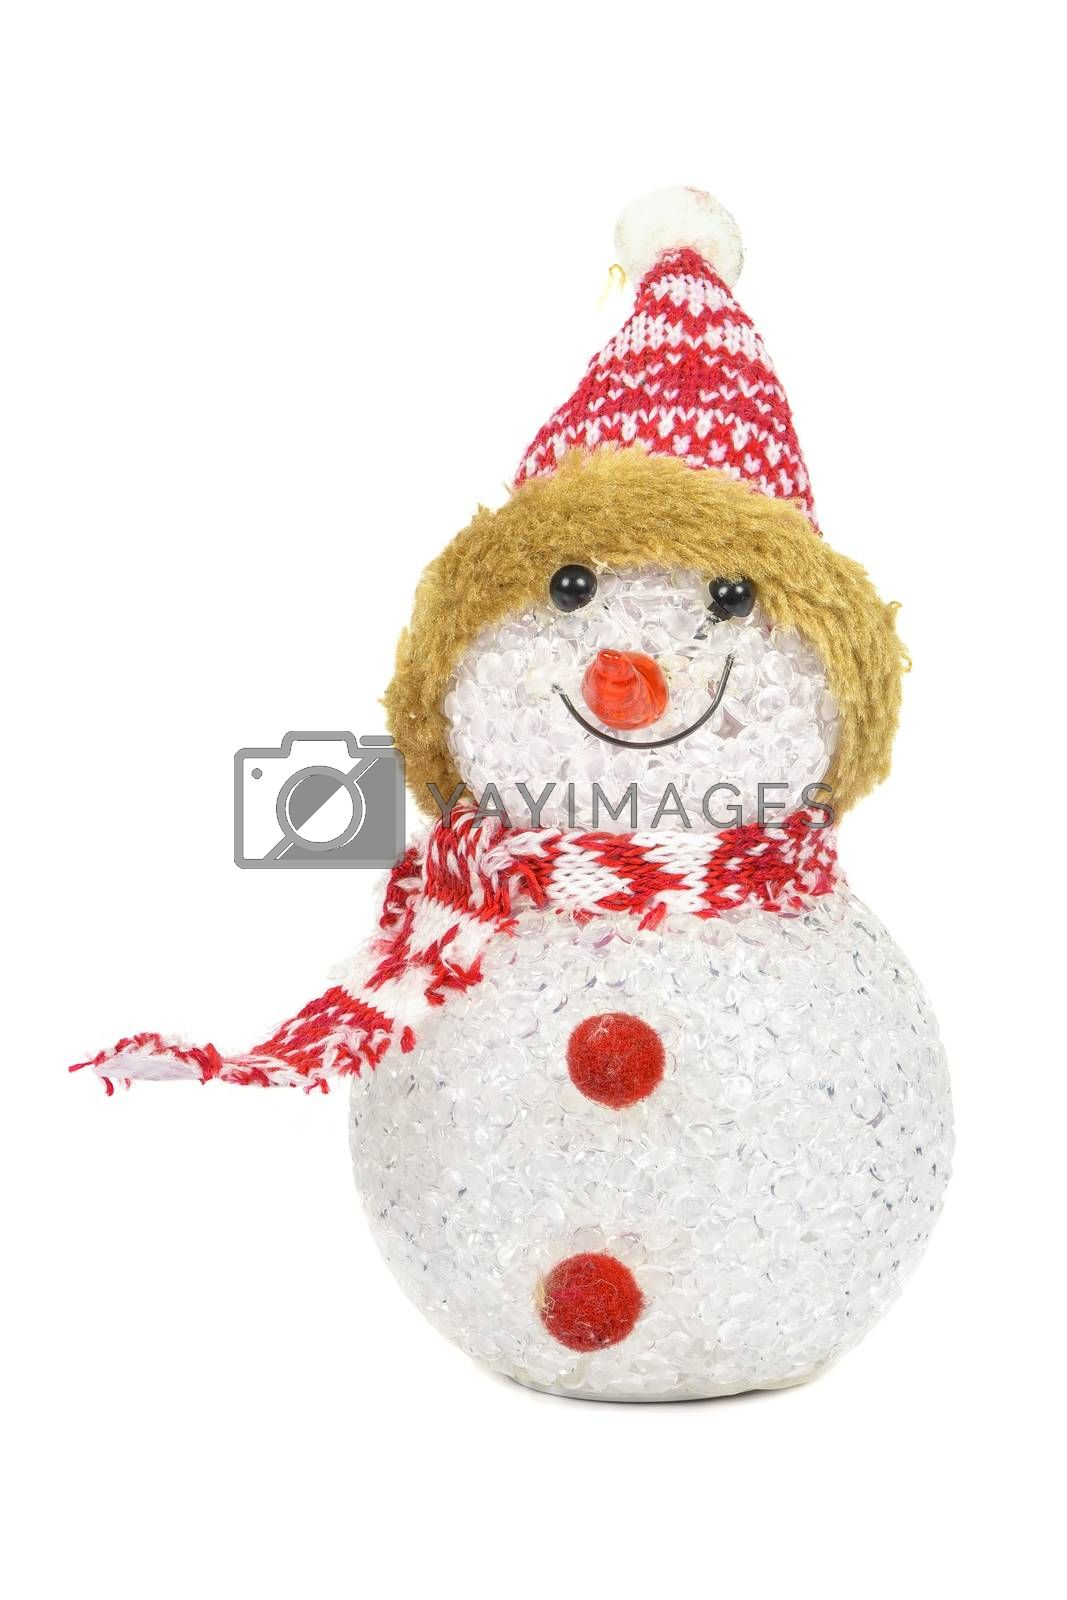 Glass snowman isolated on white background